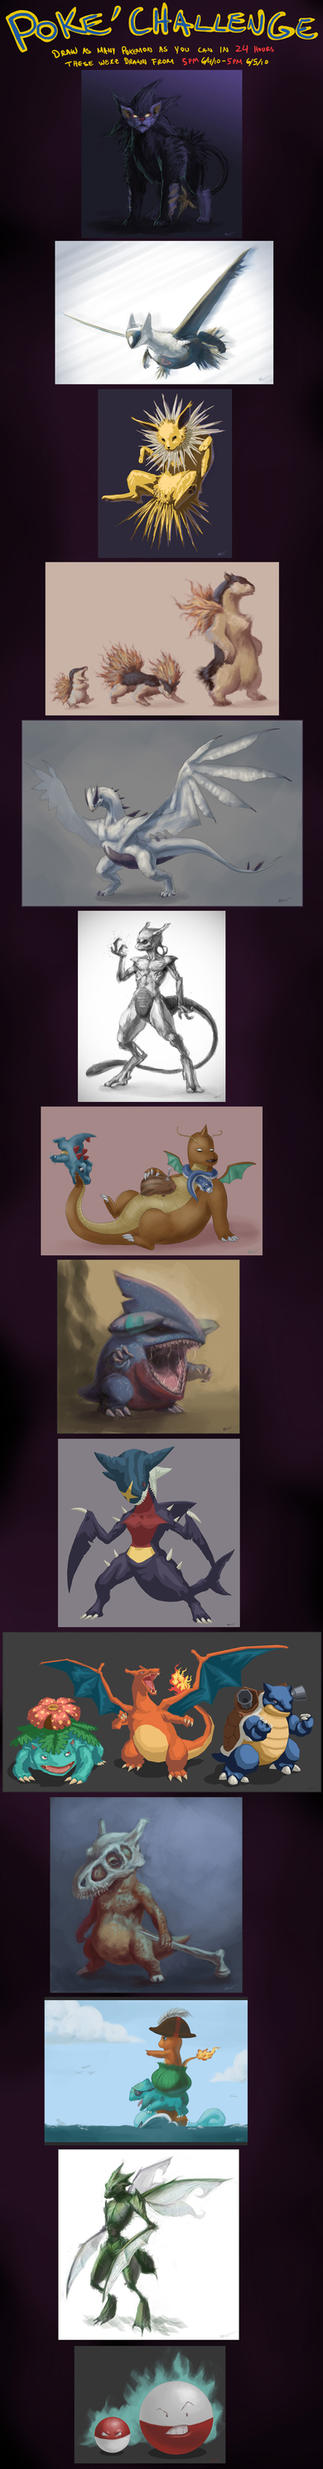 Poke'Challenge by arvalis